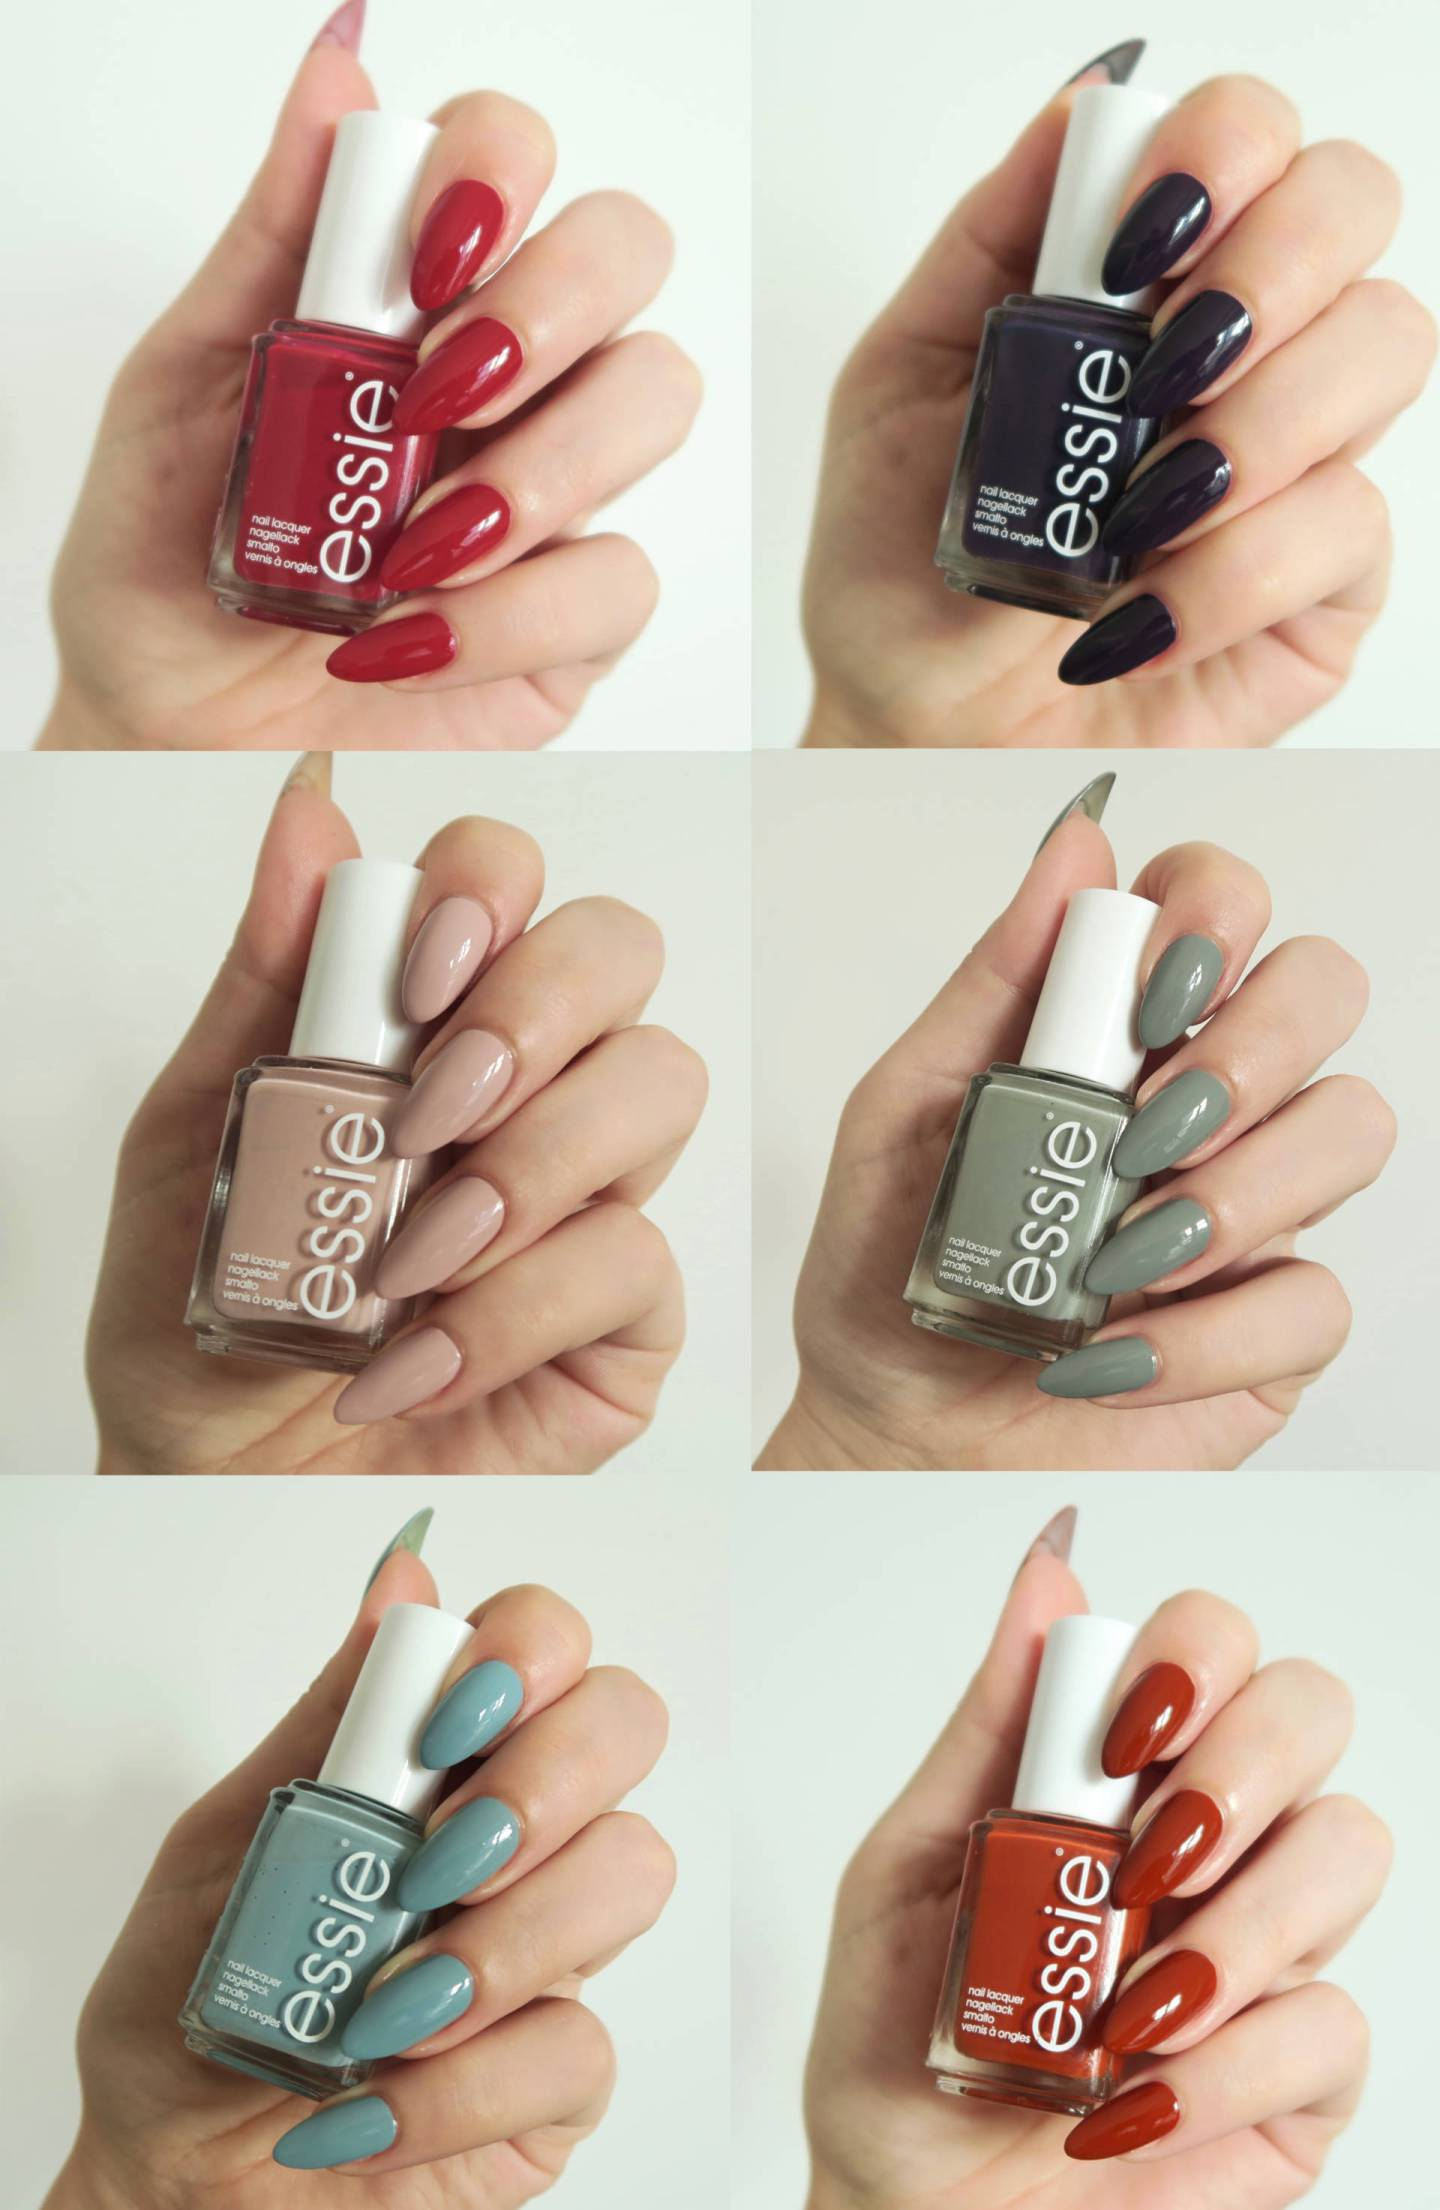 Essie Fall Collection 2016 Tokyo - Talonted Lex